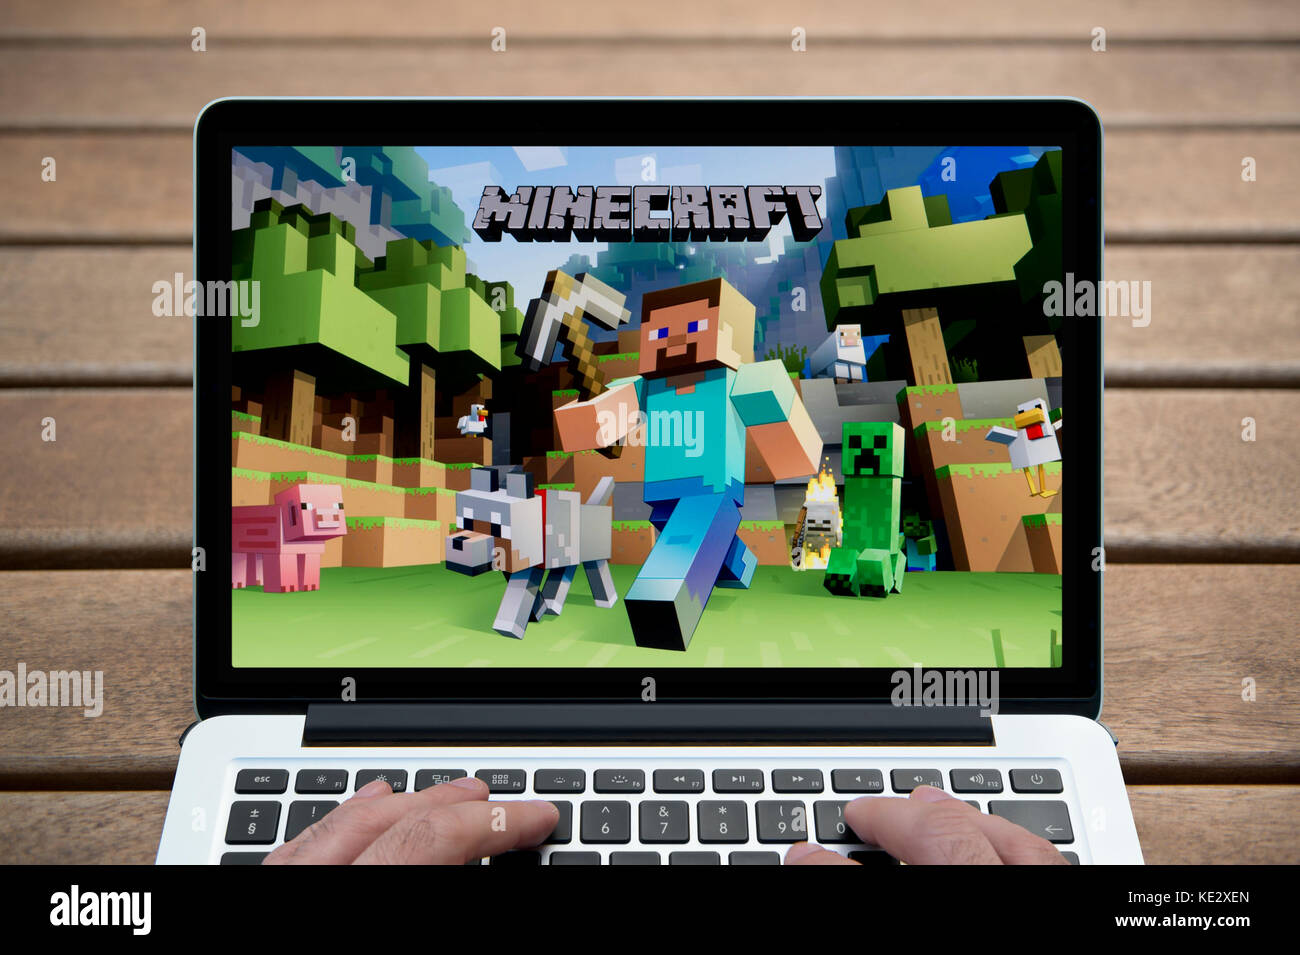 Minecraft screen stock photos minecraft screen stock images alamy the minecraft game on the screen of a macbook pro laptop shot against a wooden ccuart Gallery